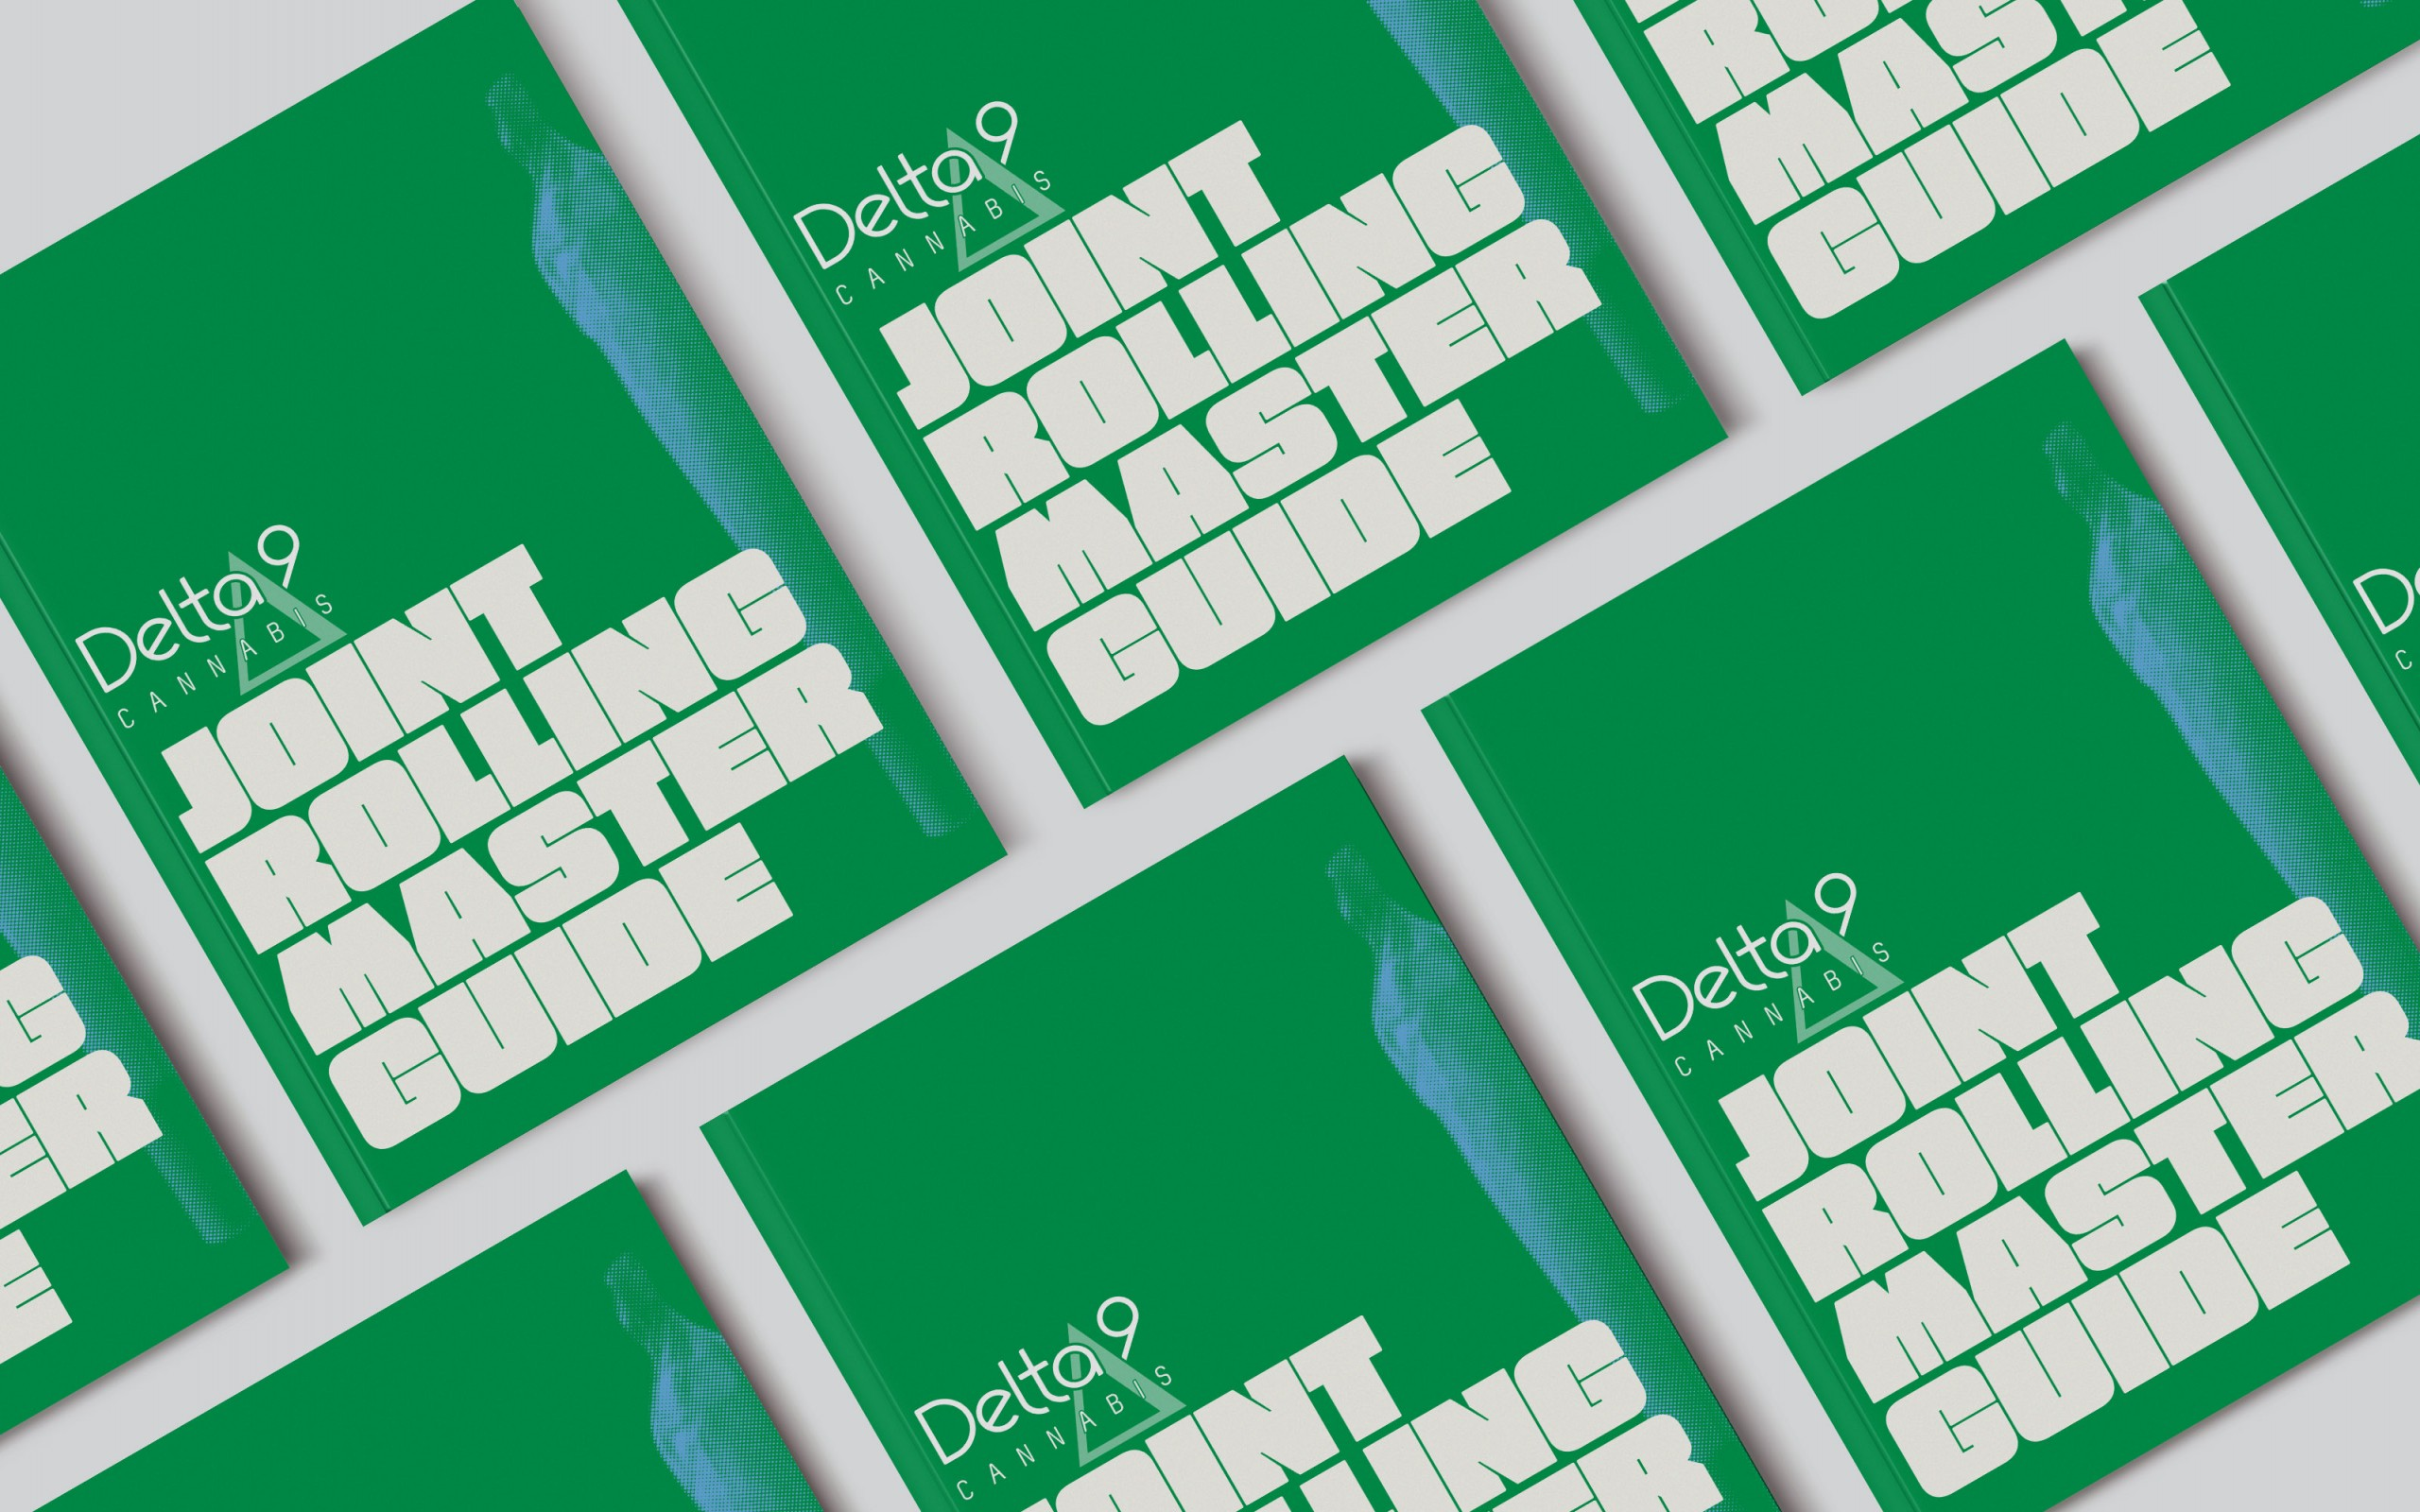 Several Delta9 Joint Rolling handbooks spread evenly across a white background.